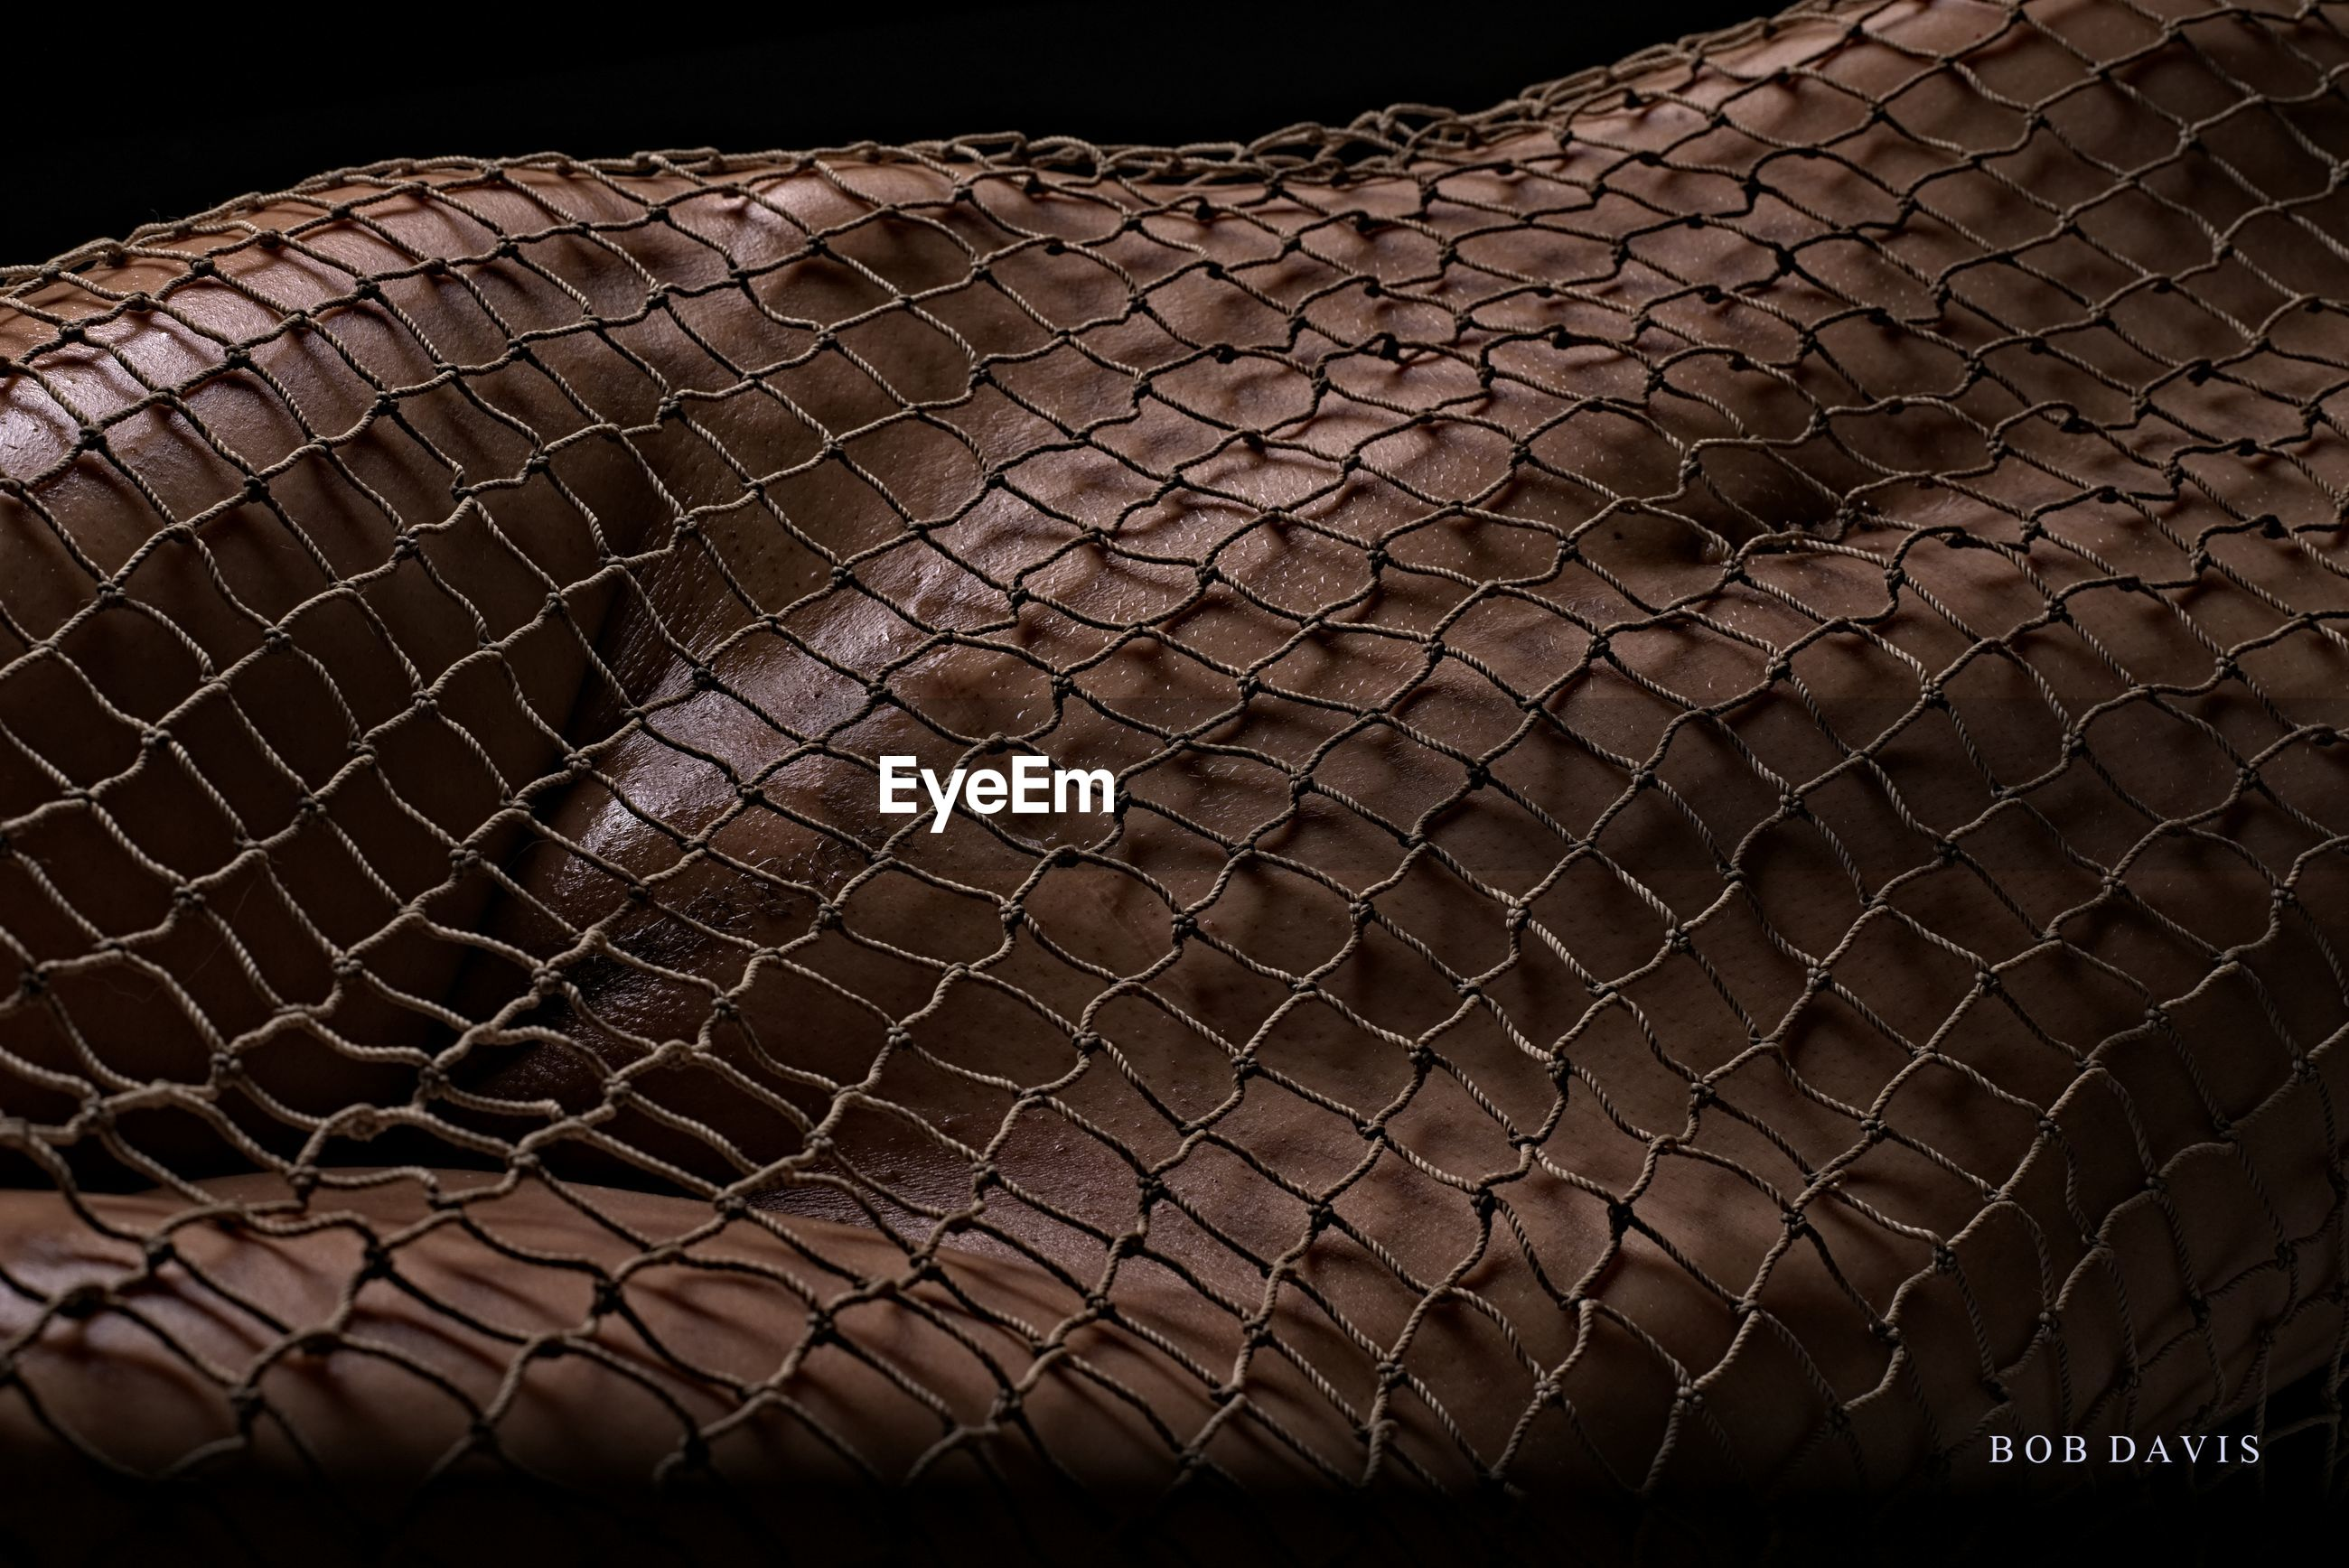 pattern, no people, close-up, fence, animal, backgrounds, animal themes, full frame, animal body part, security, animal wildlife, barrier, animal skin, boundary, textured, indoors, protection, reptile, animals in the wild, black background